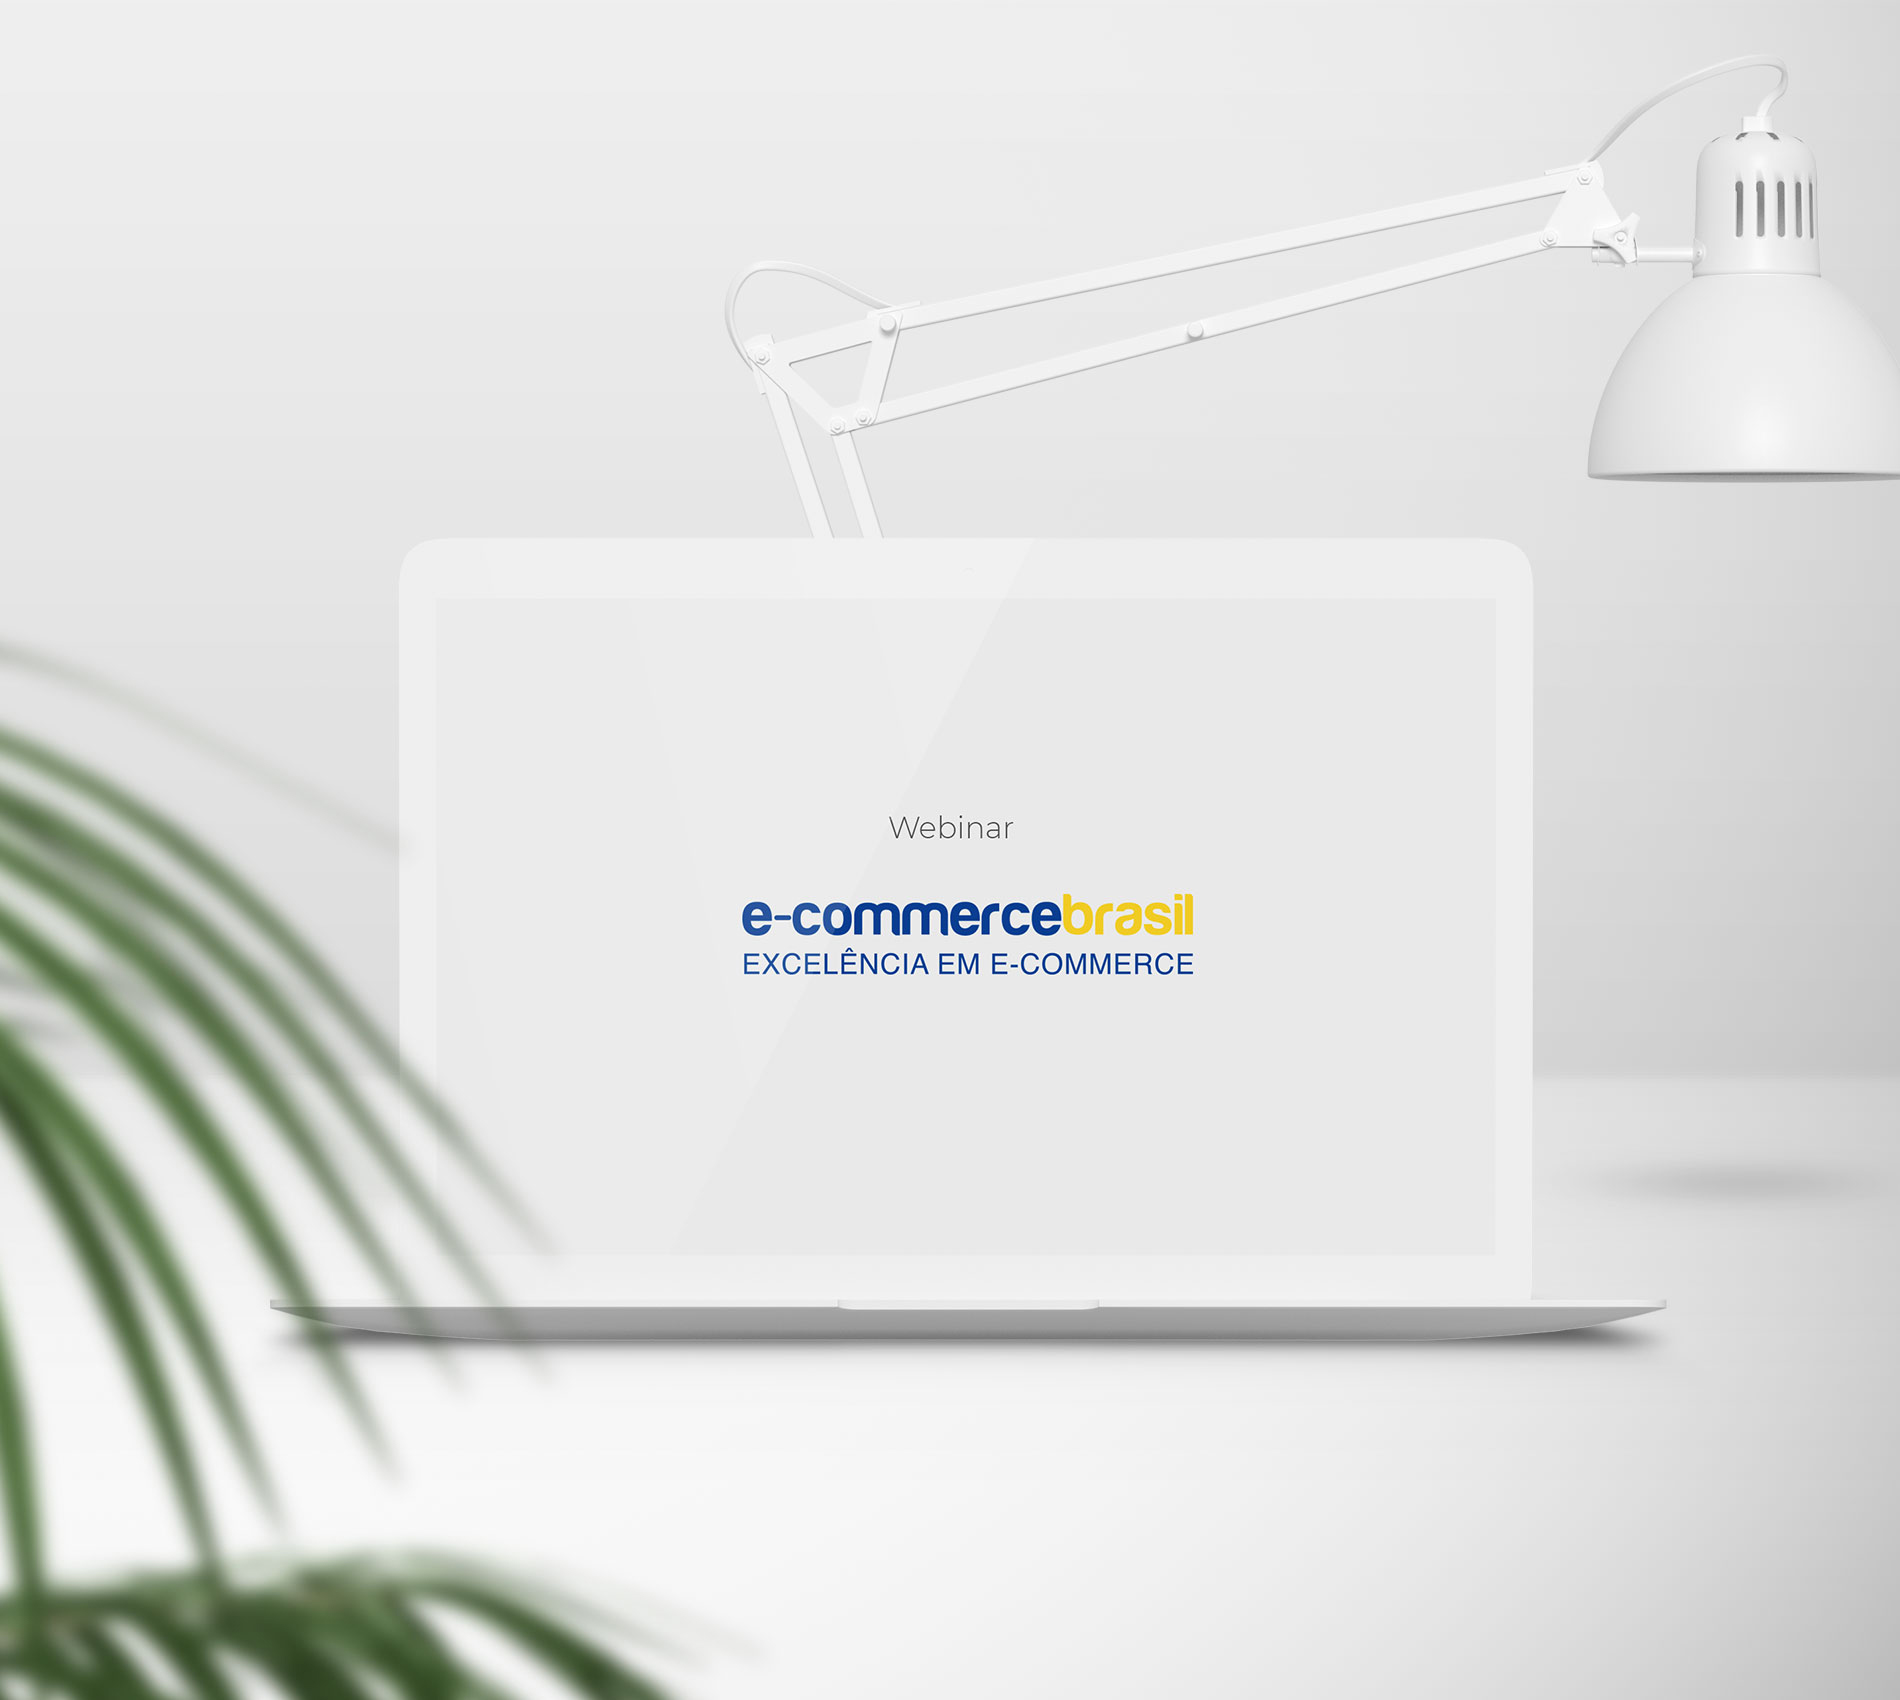 Webinar E-commerce Brasil 2020 | 3rd Edition